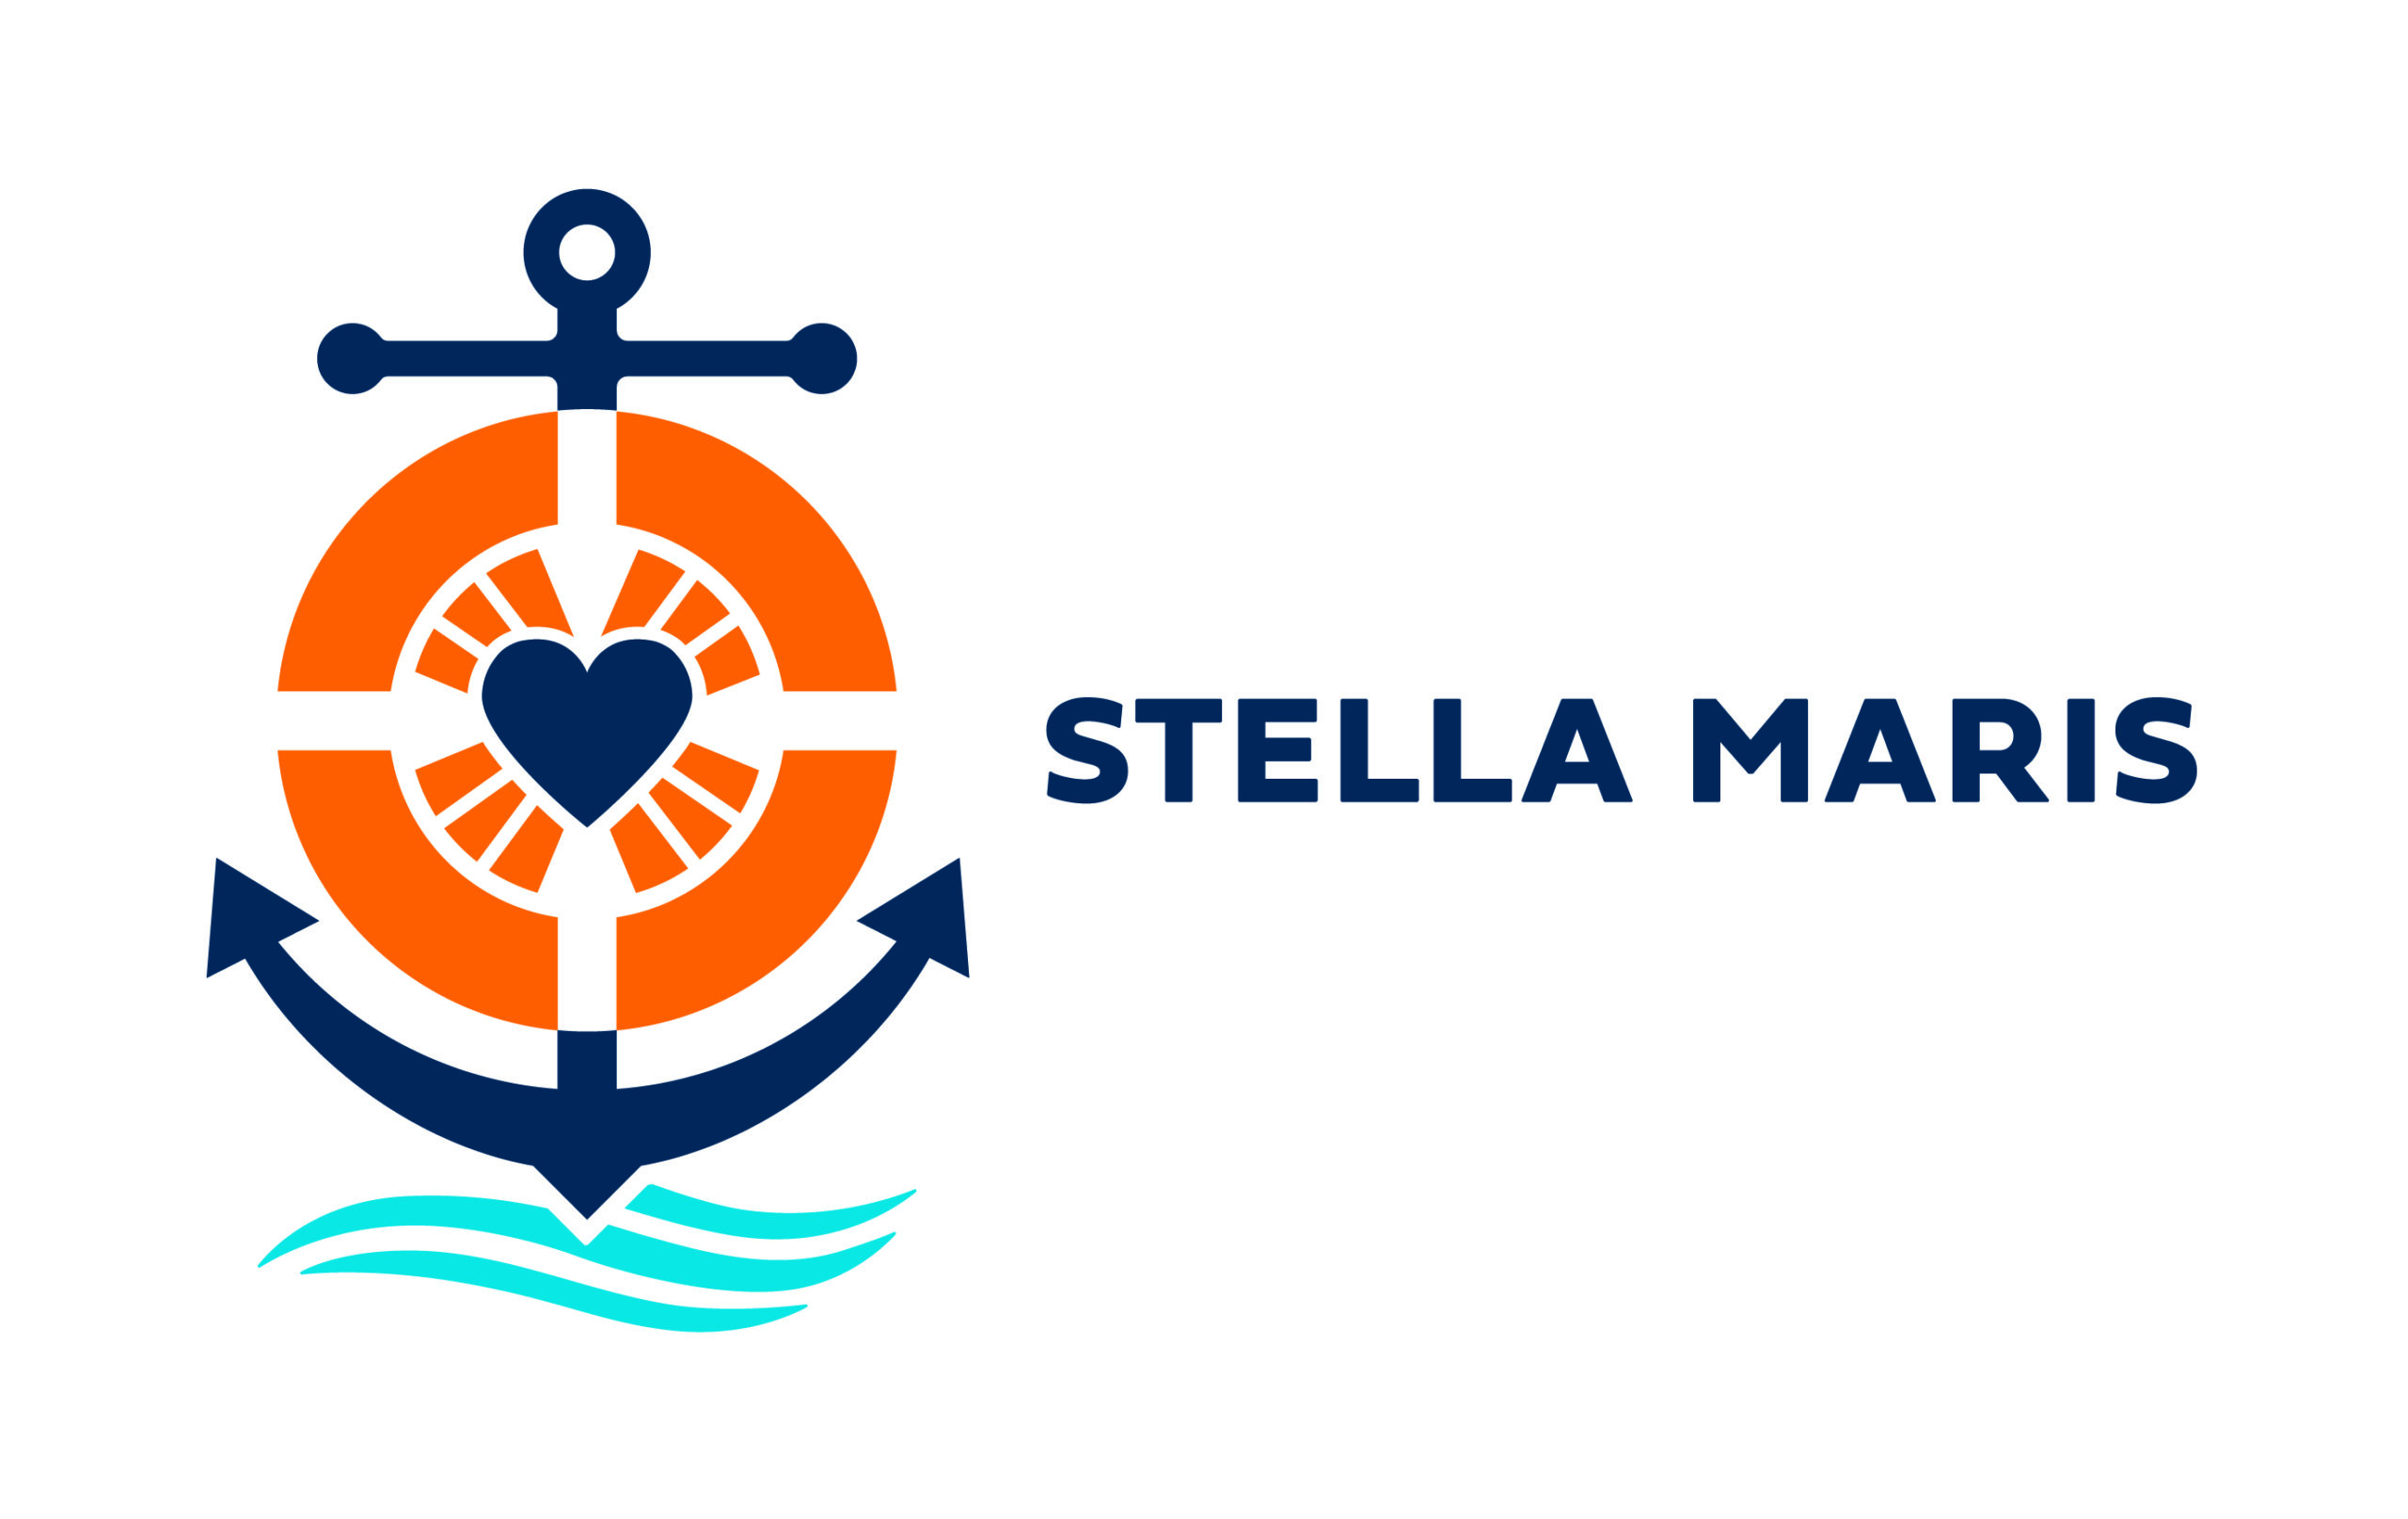 Stella Maris (Apostleship of the Sea)